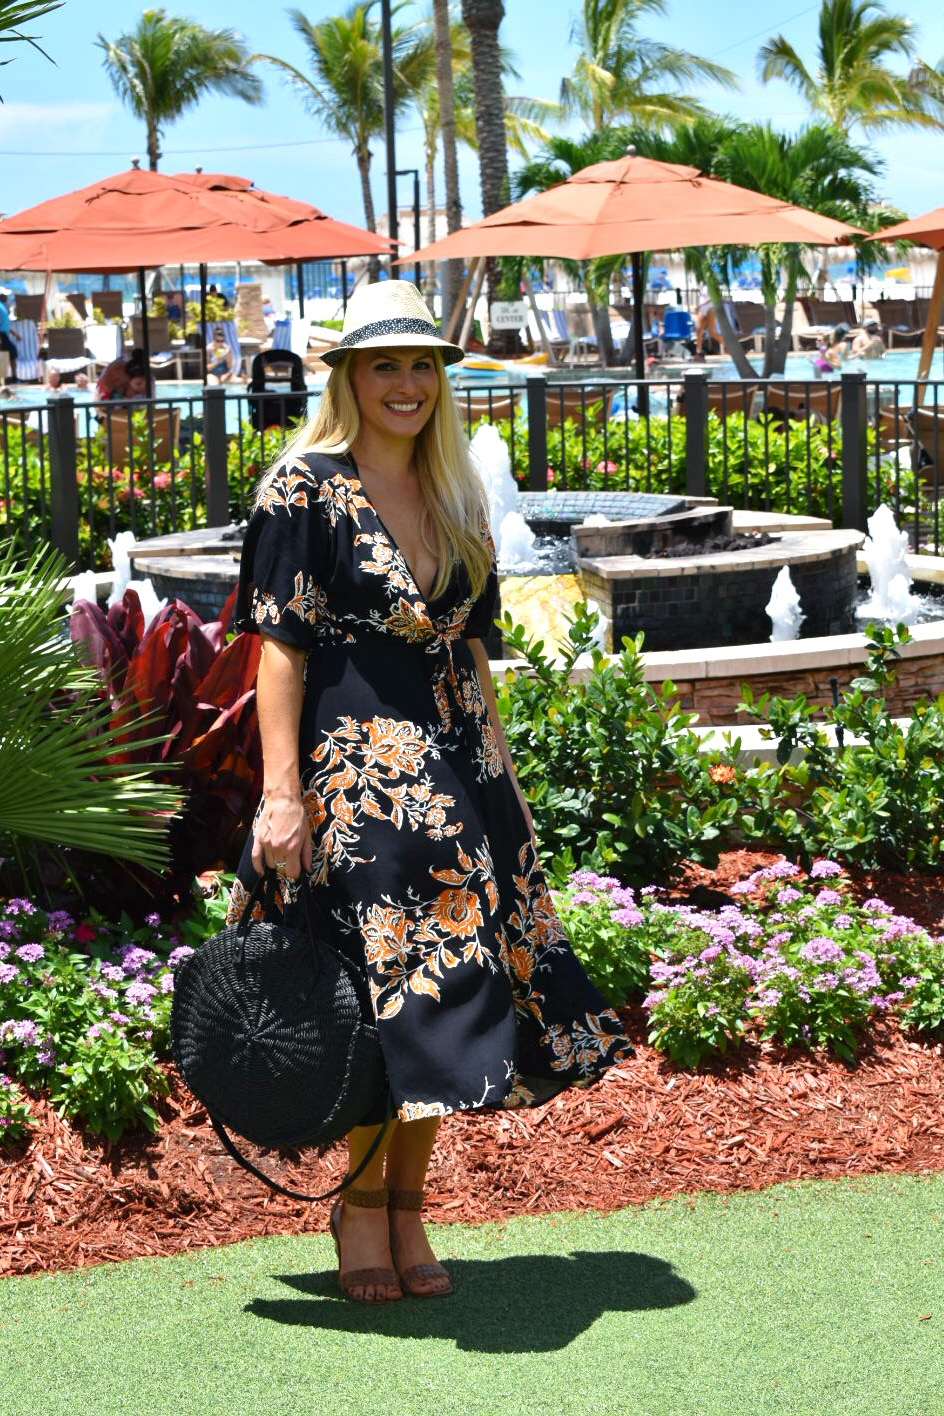 Floral Wrap Dress, Fedora and Round Straw Bag in Marco Island Florida